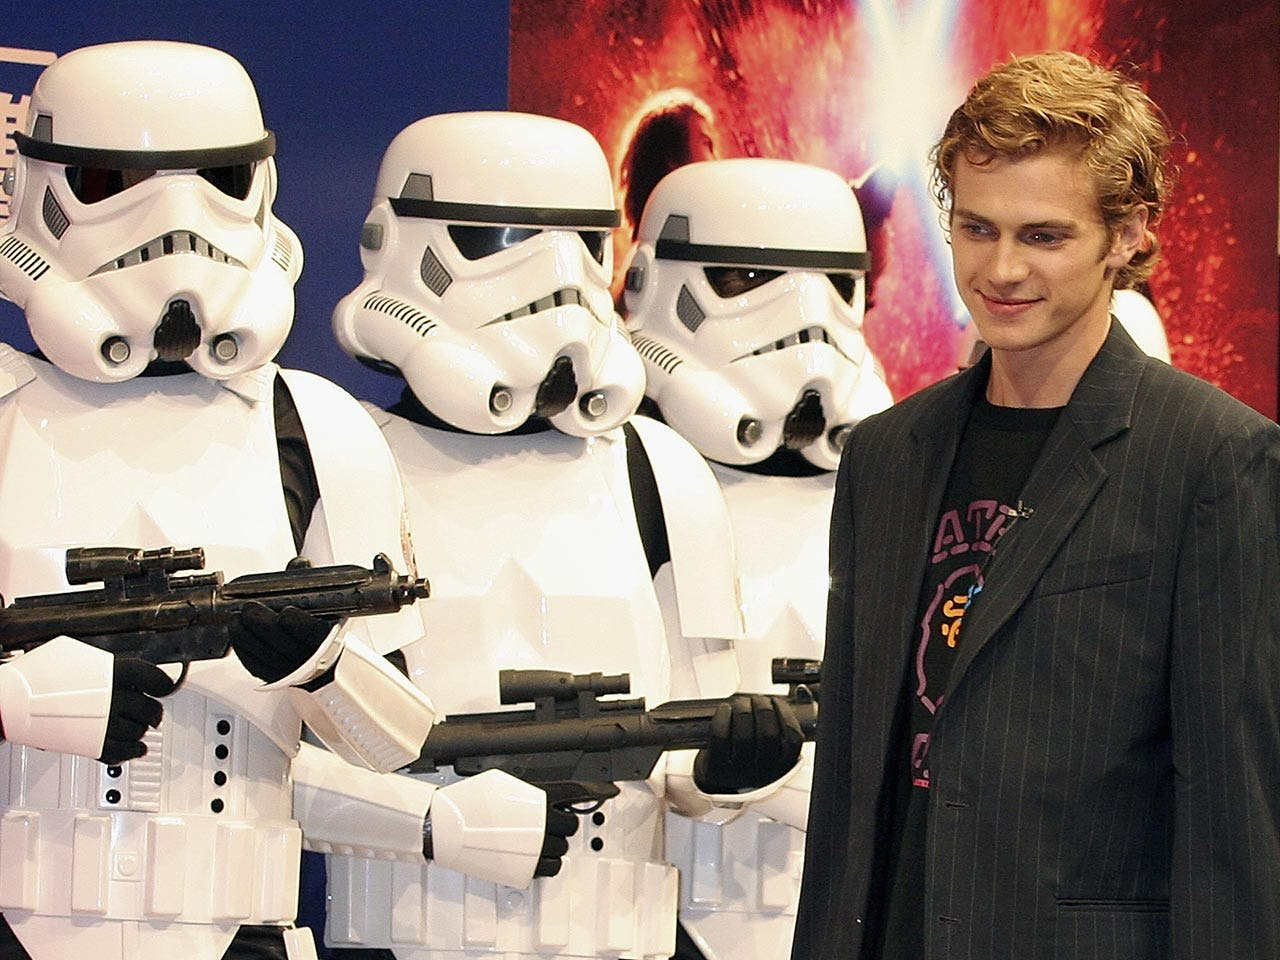 Hayden Christensen stands with Stormtroopers during a photocall to promote the film